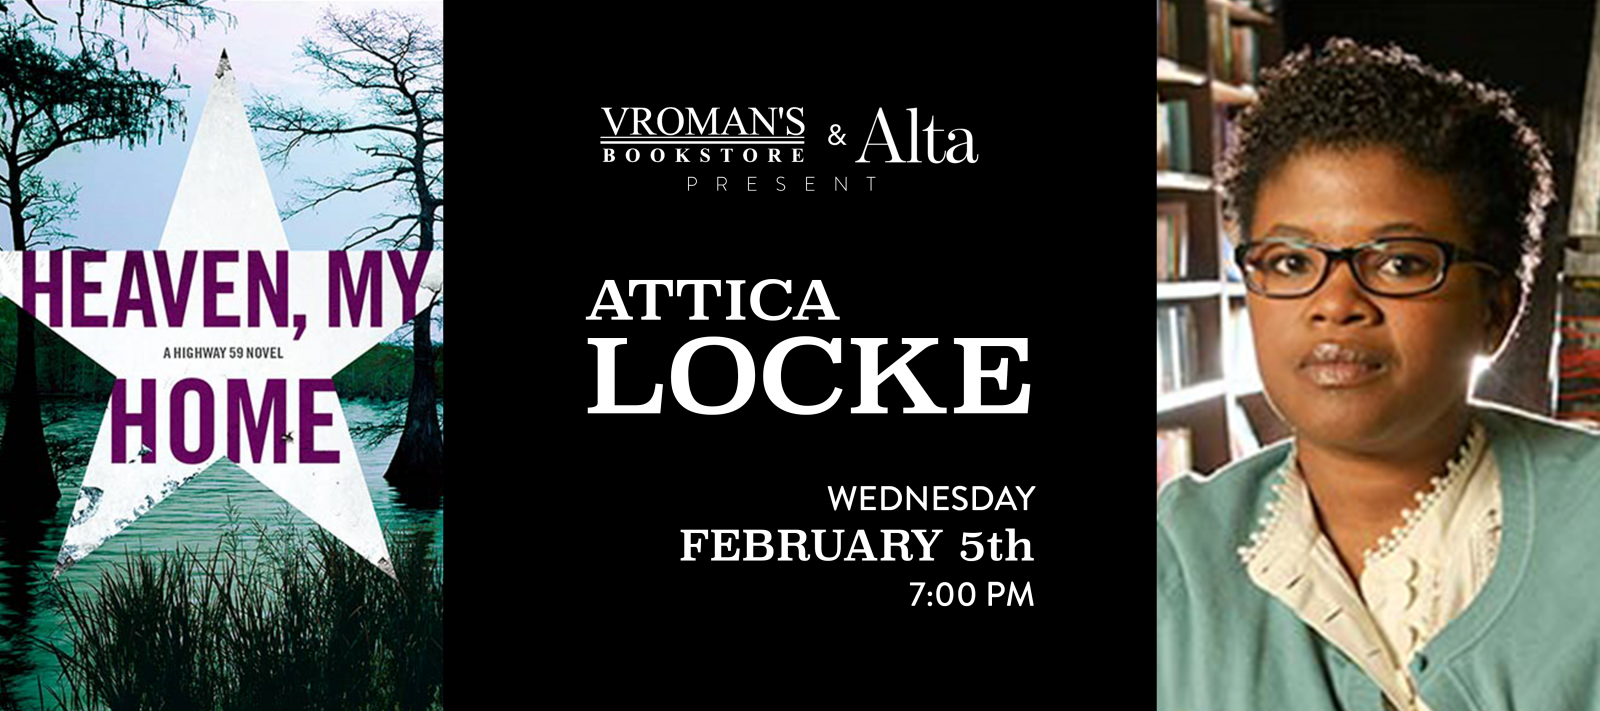 Attica Locke book signing on Wednesday, February 5, at 7pm